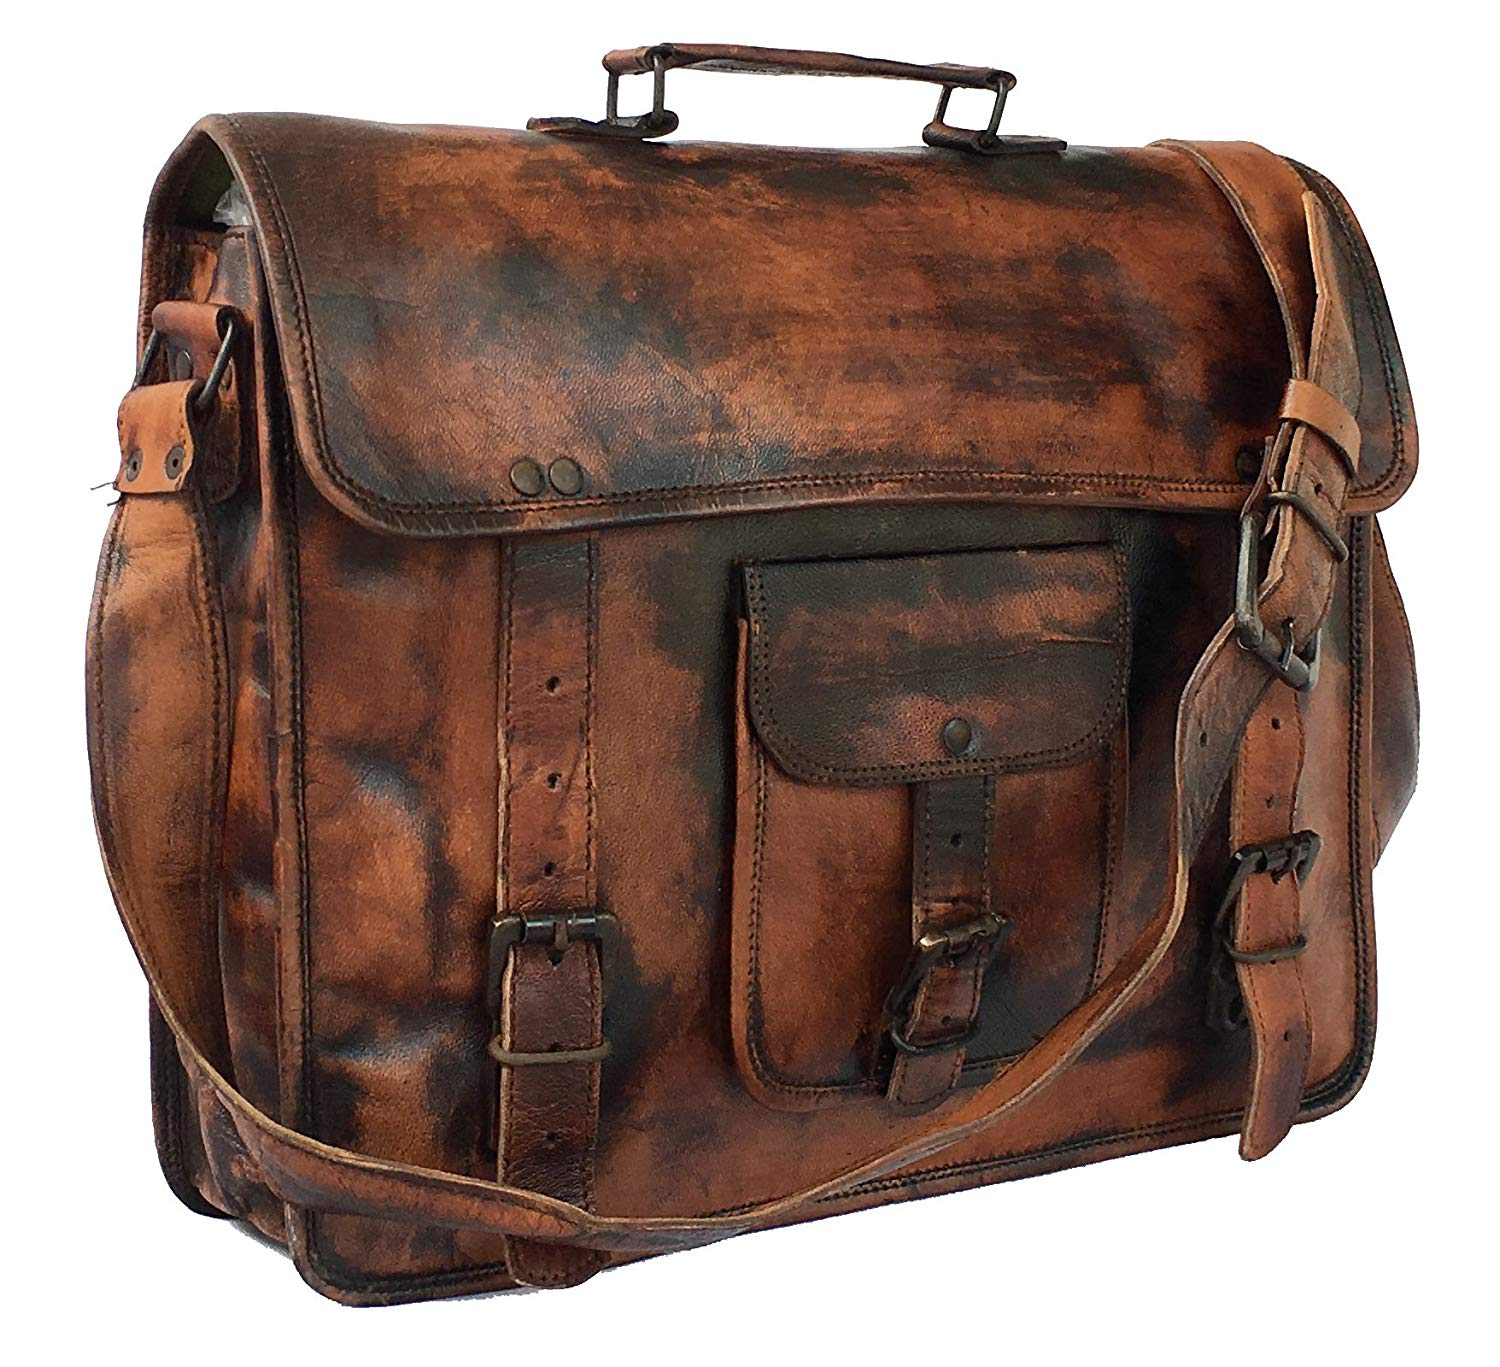 HandMadeCart Leather Vintage 15 Inch Laptop Messenger Bag briefcase Satchel for Men and Women